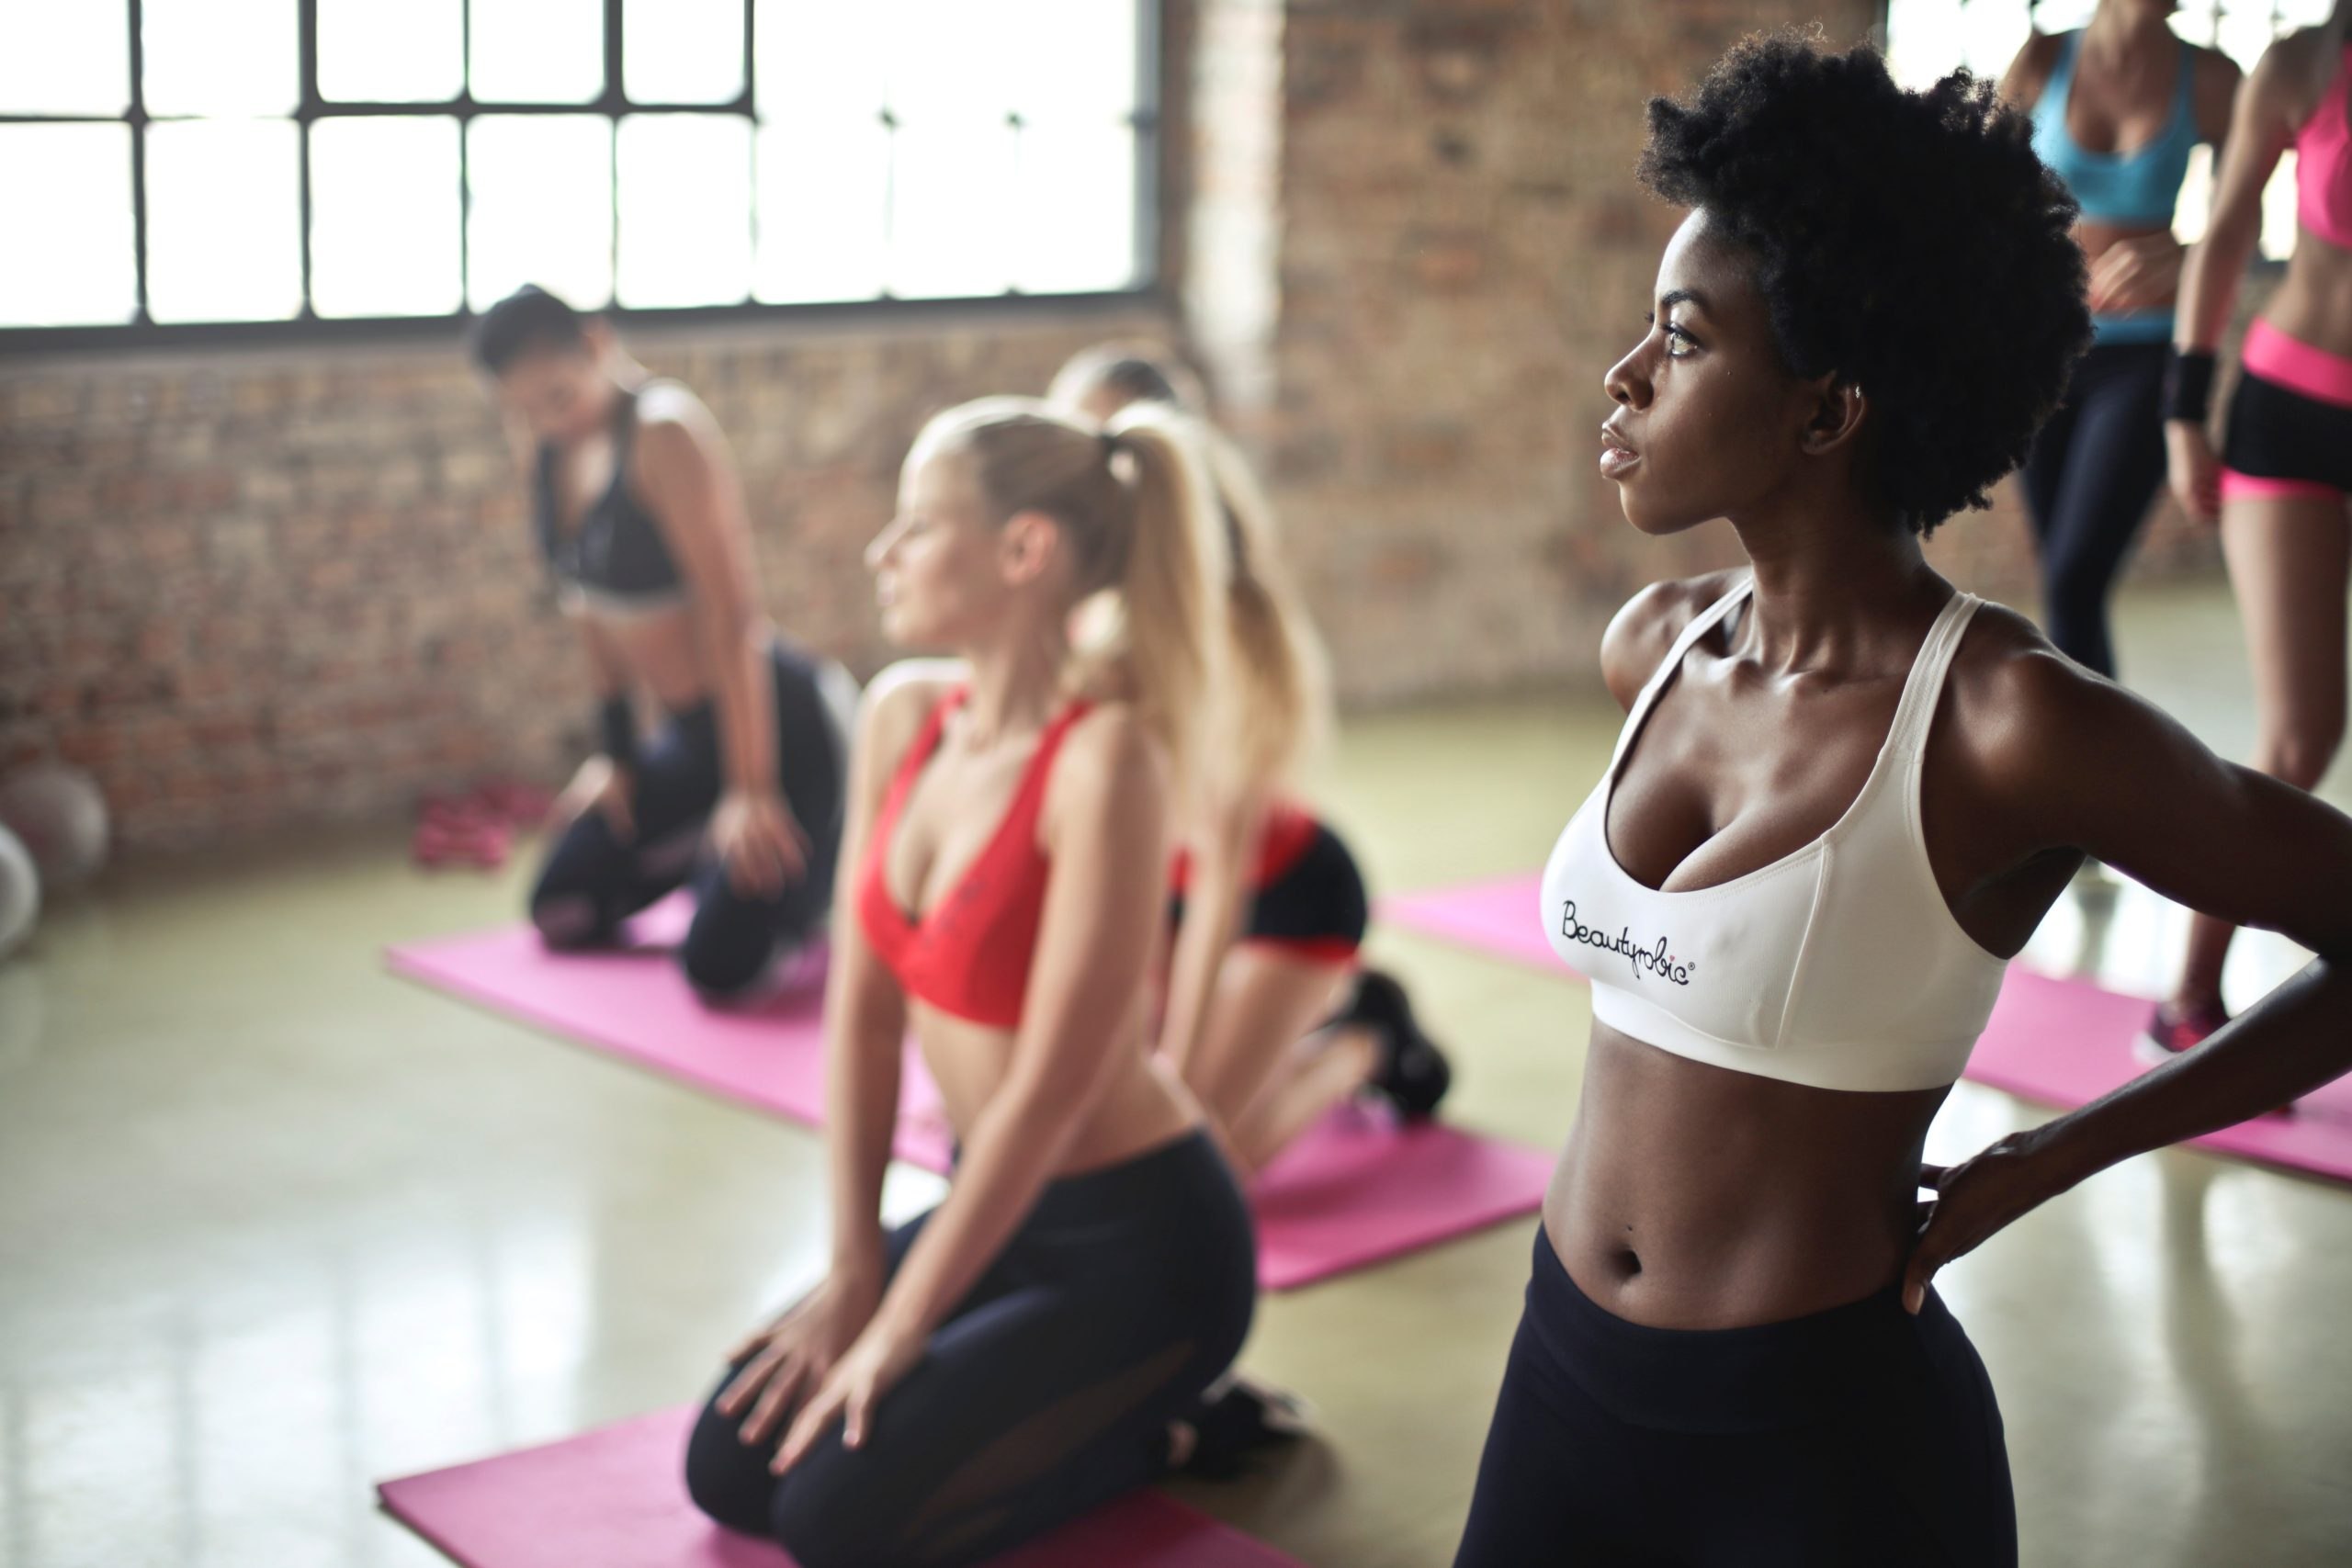 How to Make Health and Fitness a Lifestyle - Tips For Busy People